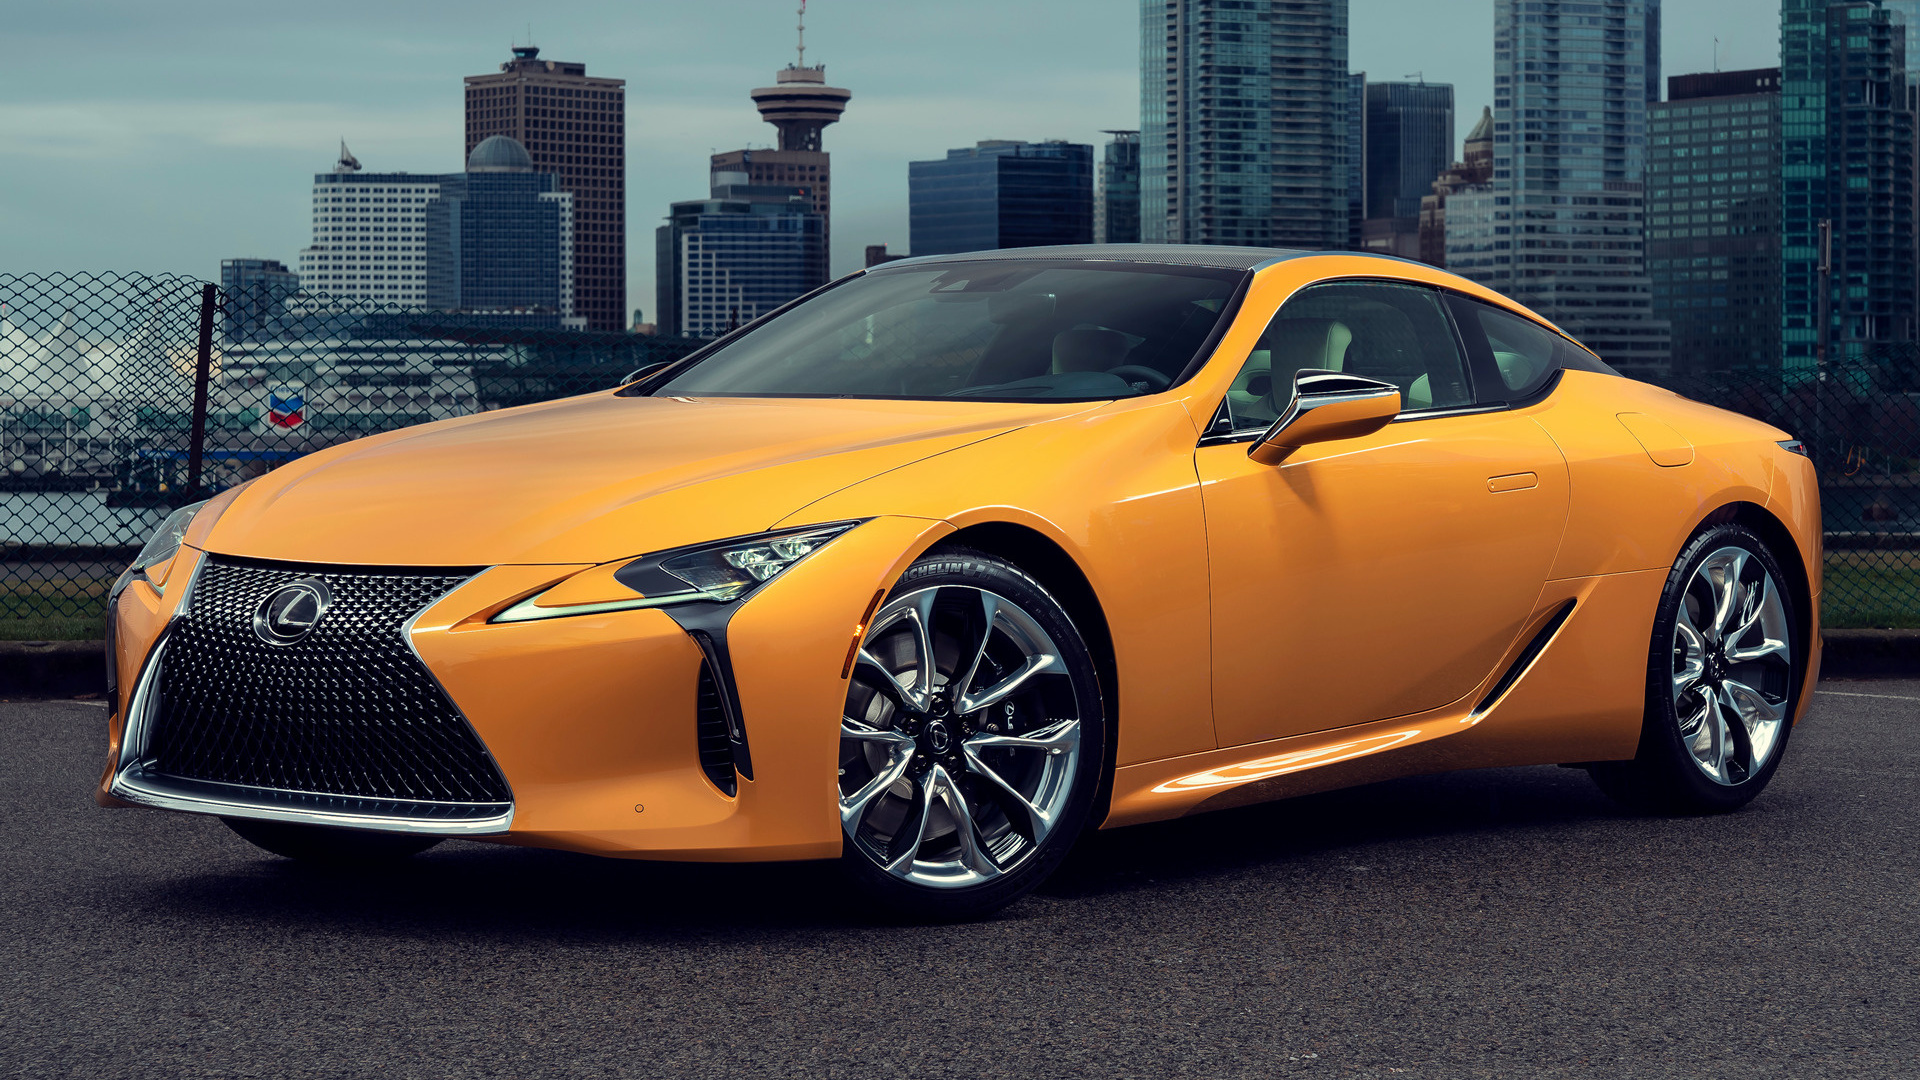 2019 Lexus LC Inspiration Series (US)